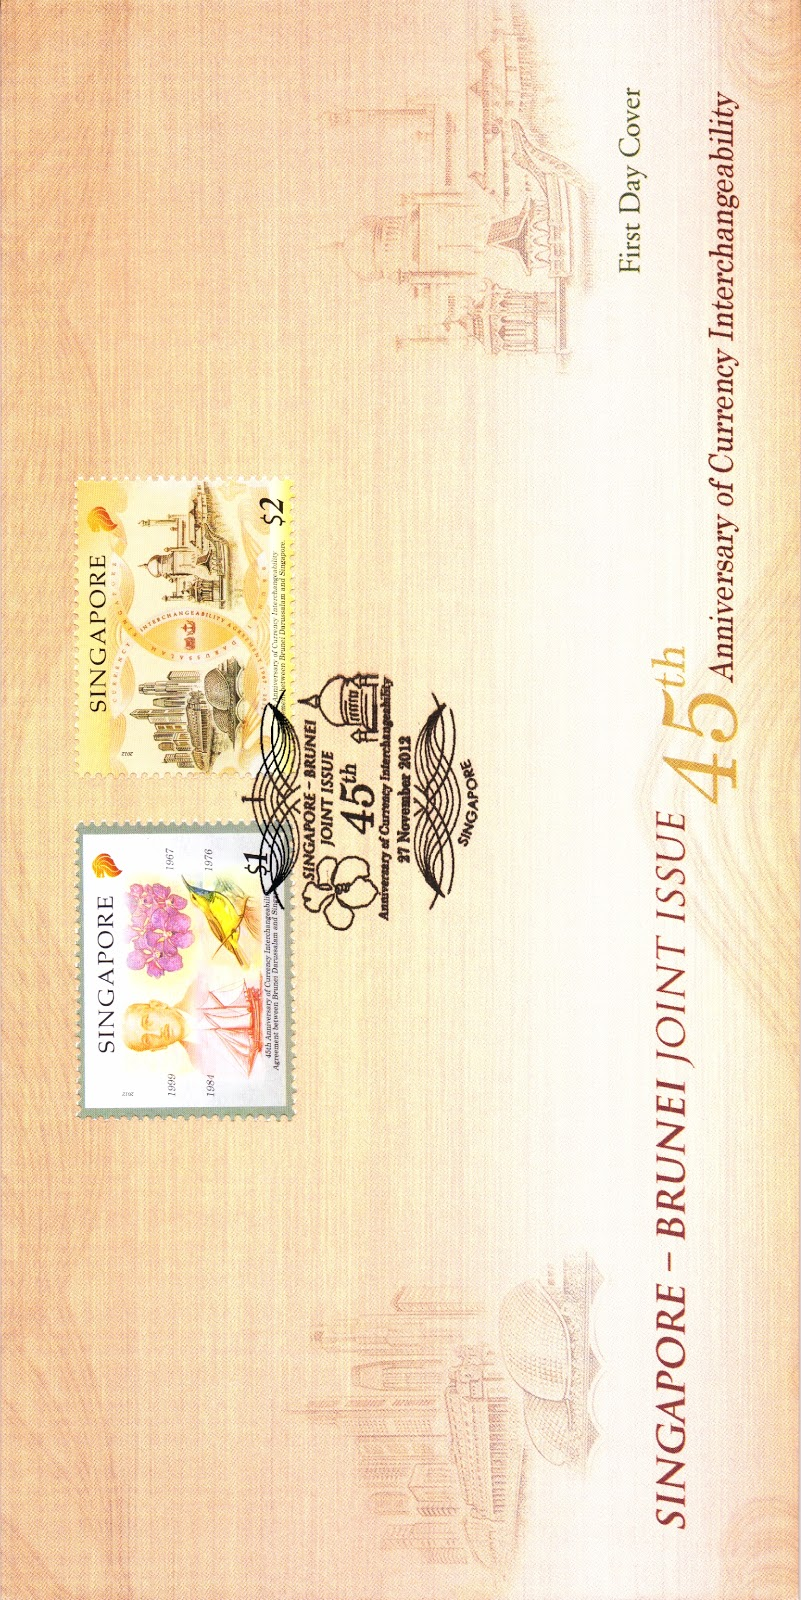 Precancelled First Day Cover affixed with two stamp designs1 (S$3.85)